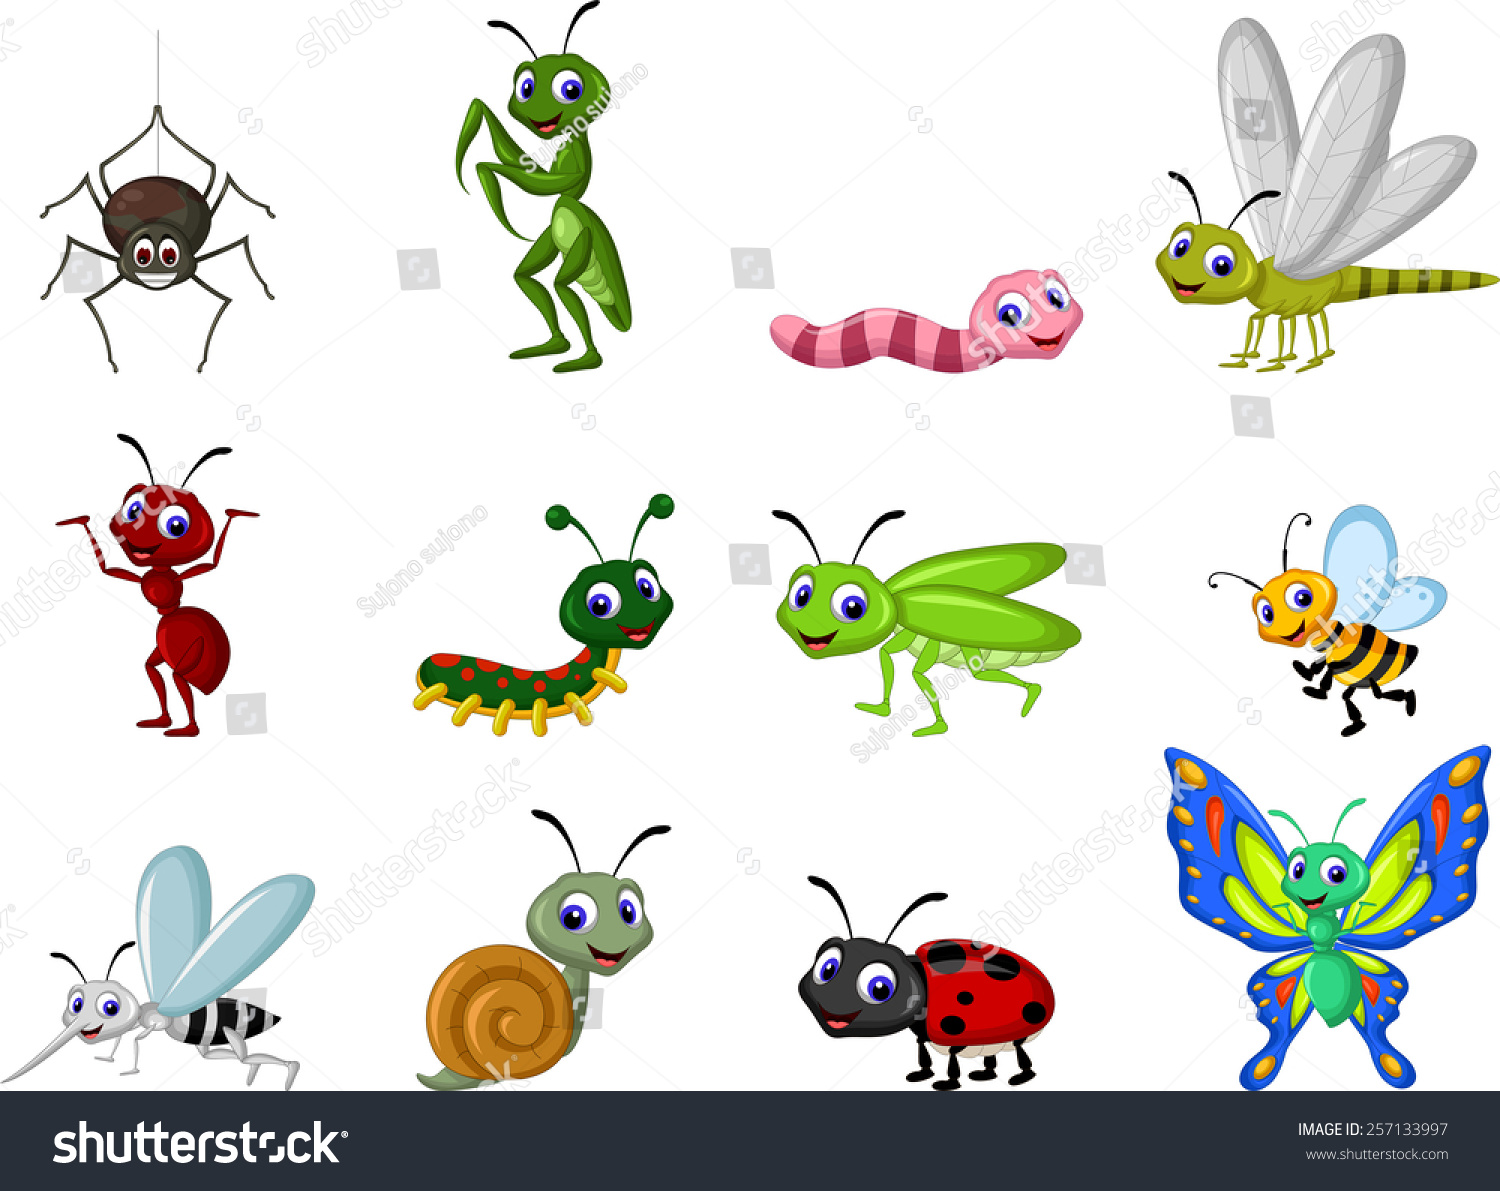 cartoon insect clipart - photo #42